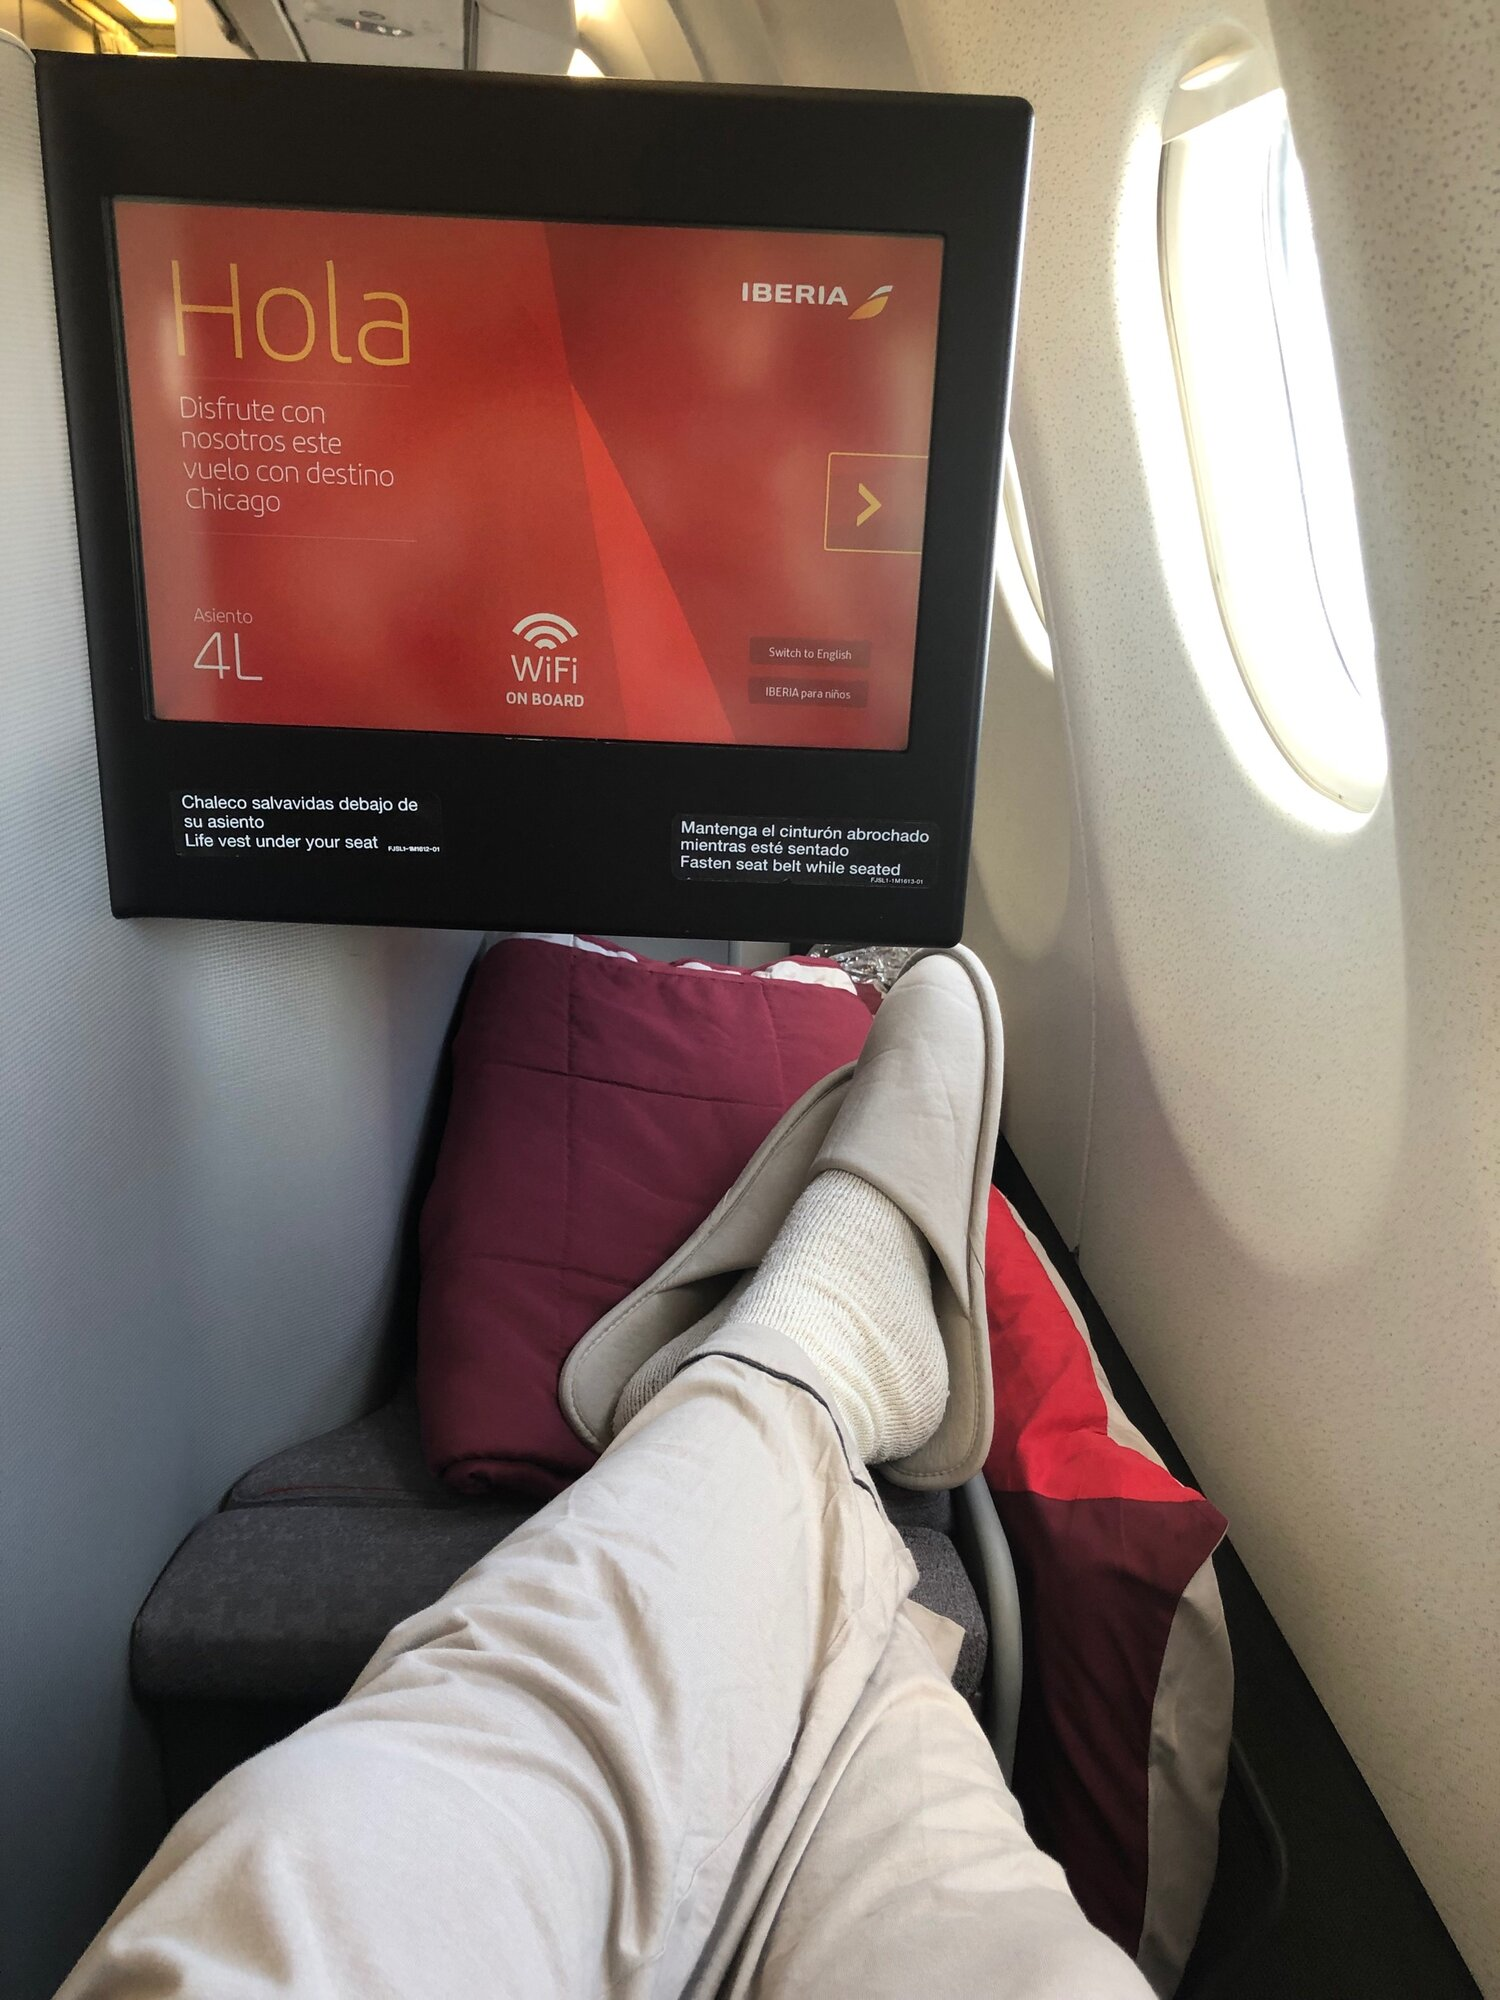 Iberia's business class seat on the A340